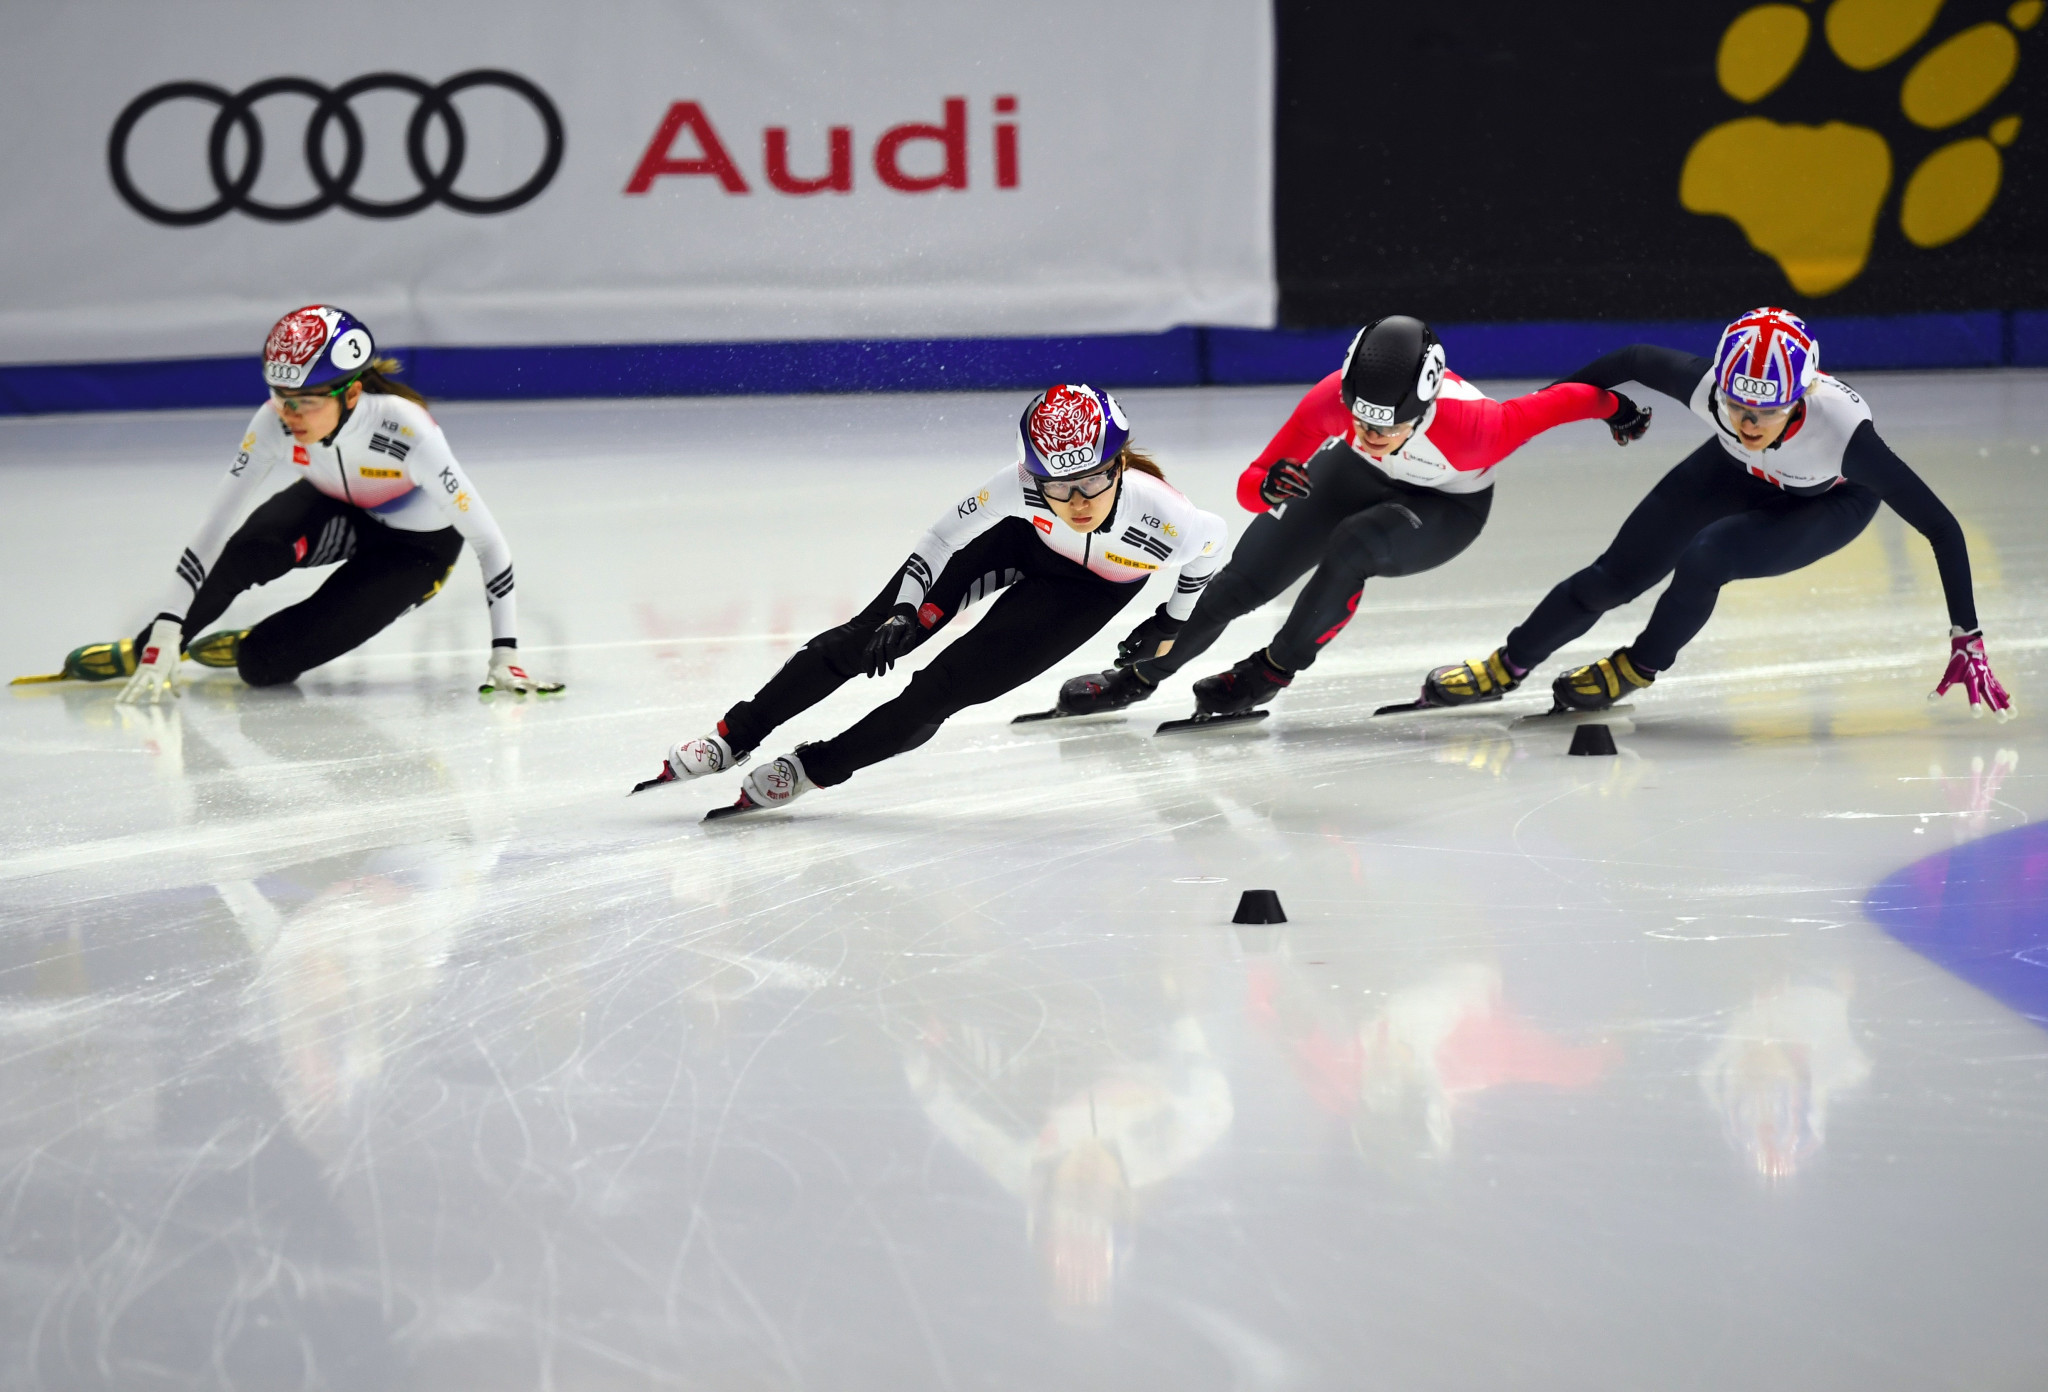 Choi Min-Jeong, second left, of South Korea, Kim Boutin, second right, of Canada and Elise Christie, right, of Great Britain compete as Shim Suk-hee, left, of South Korea falls during the women's 1000 metres at the ISU World Cup Short Track Speed Skating in Seoul ©Getty Images